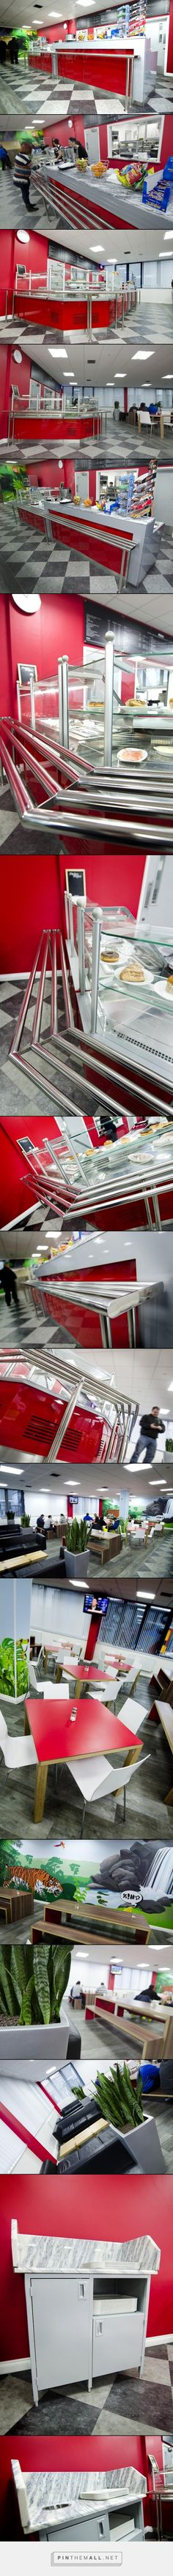 #Bromley #Canteen #DisplayCounter #RedInterior #Alluminium #LacquerFinish #StainlessSteel #Marble #HighBar